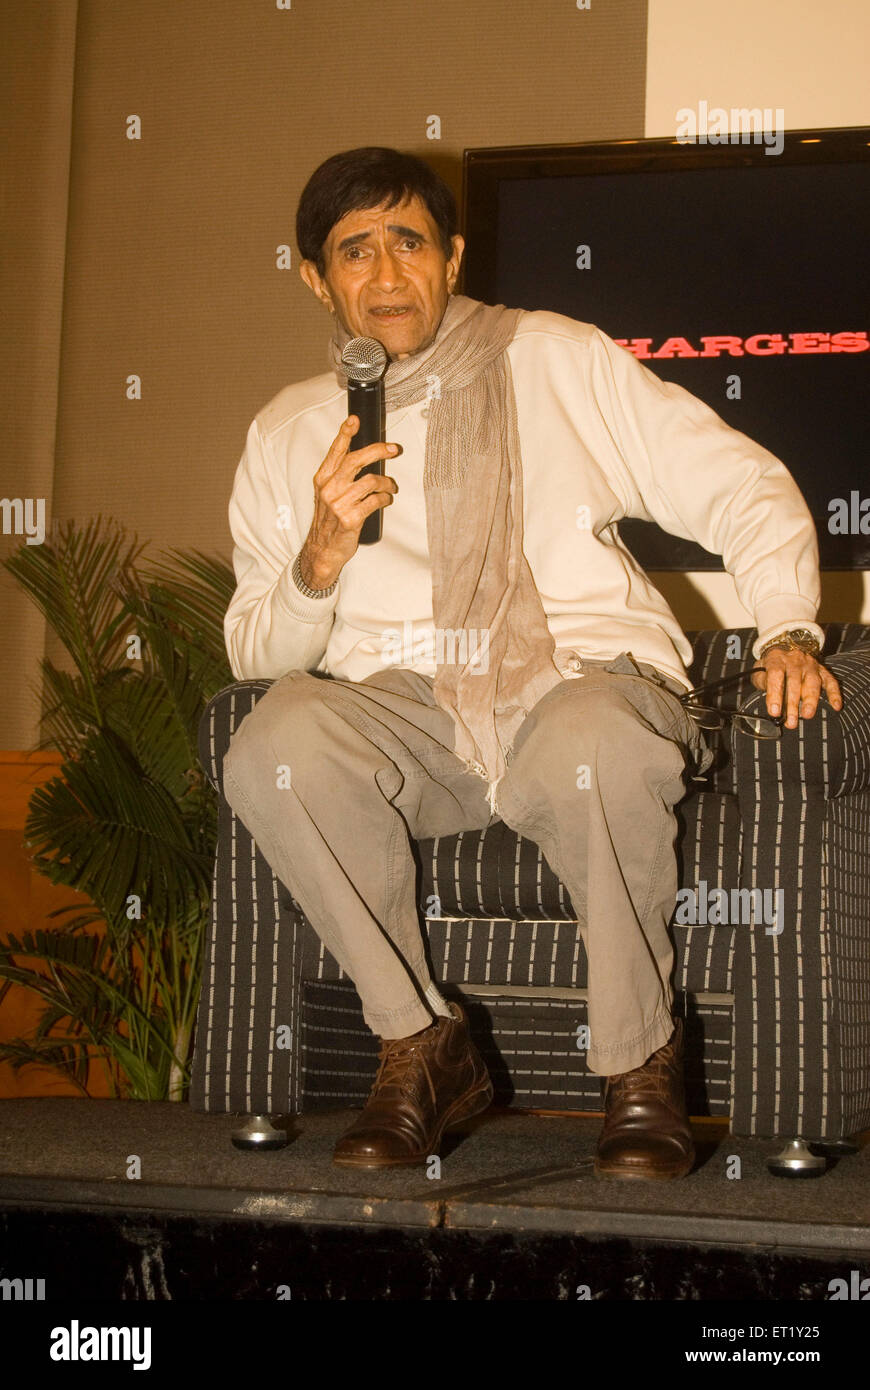 bollywood actor dev anand - Stock Image